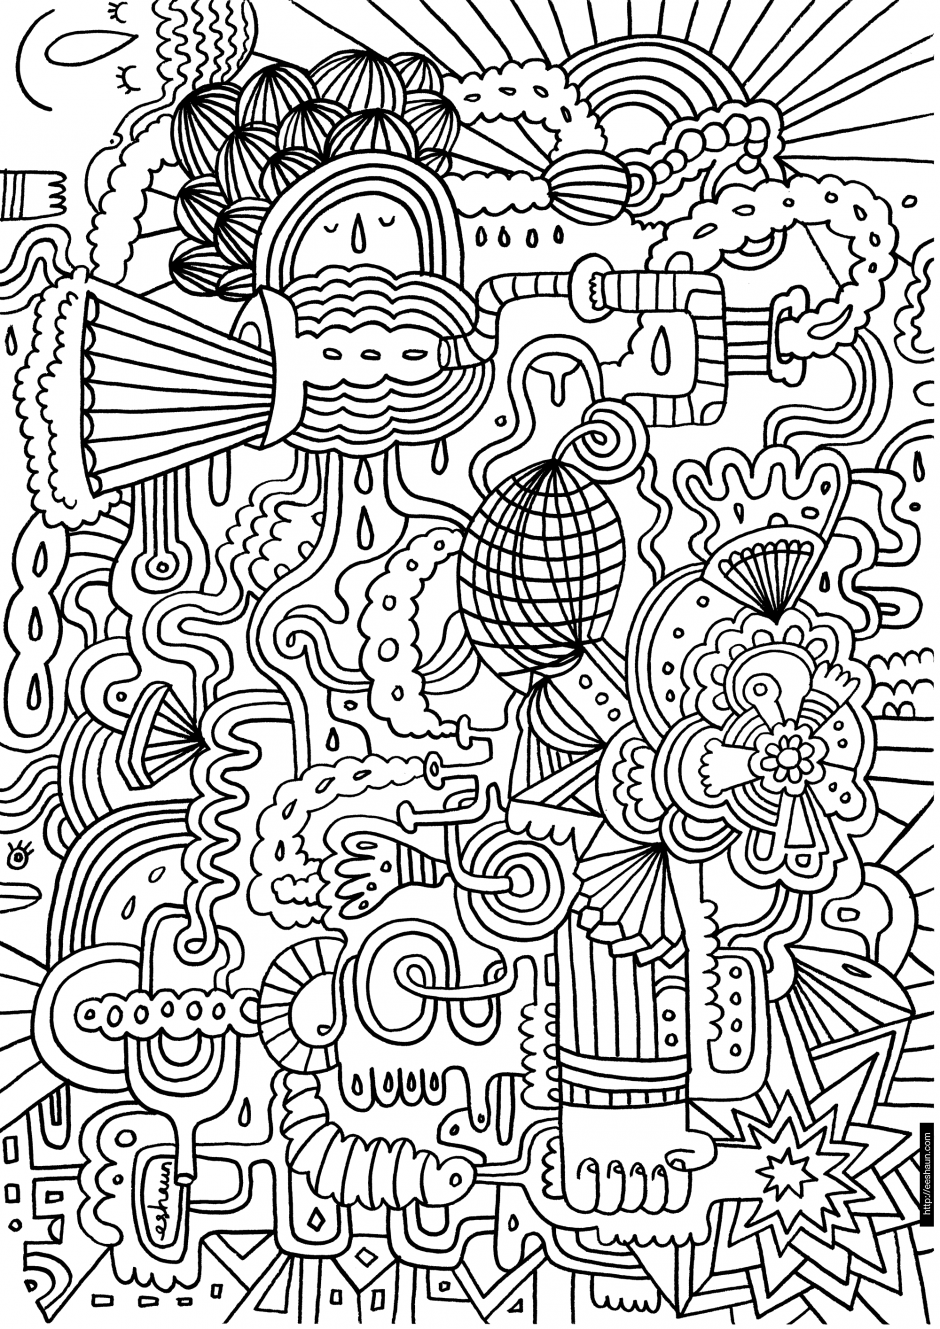 coloring pictures hard hard coloring pages 9 coloring pages for kids pictures hard coloring